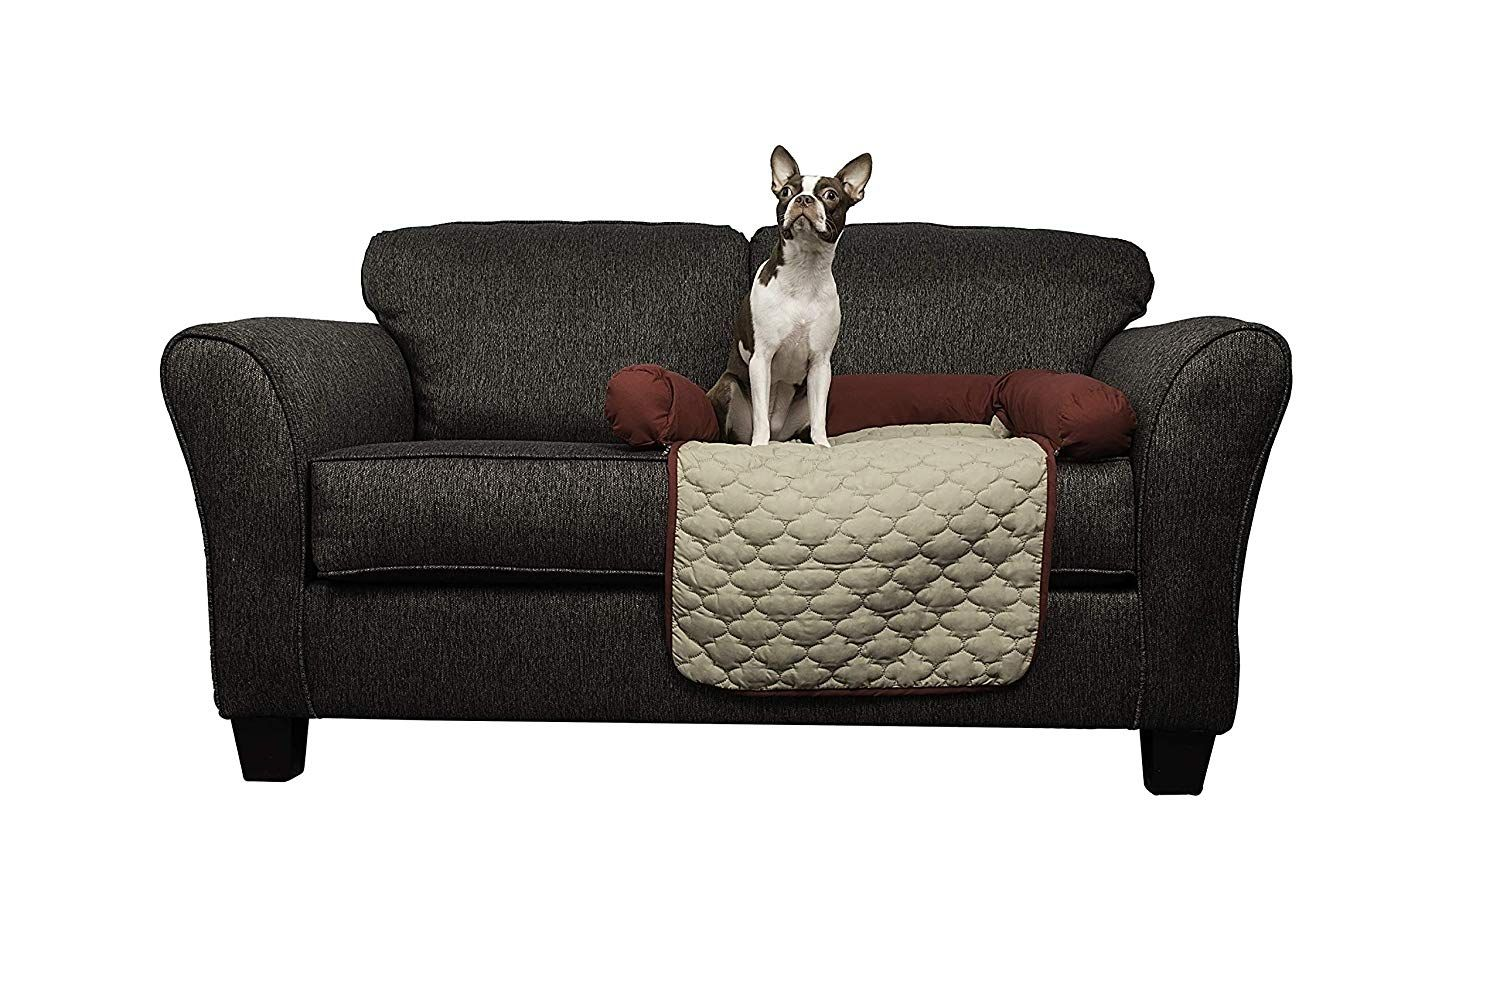 Quick Fit Wubba Reversible Pet Bed Couch Cover for Dogs